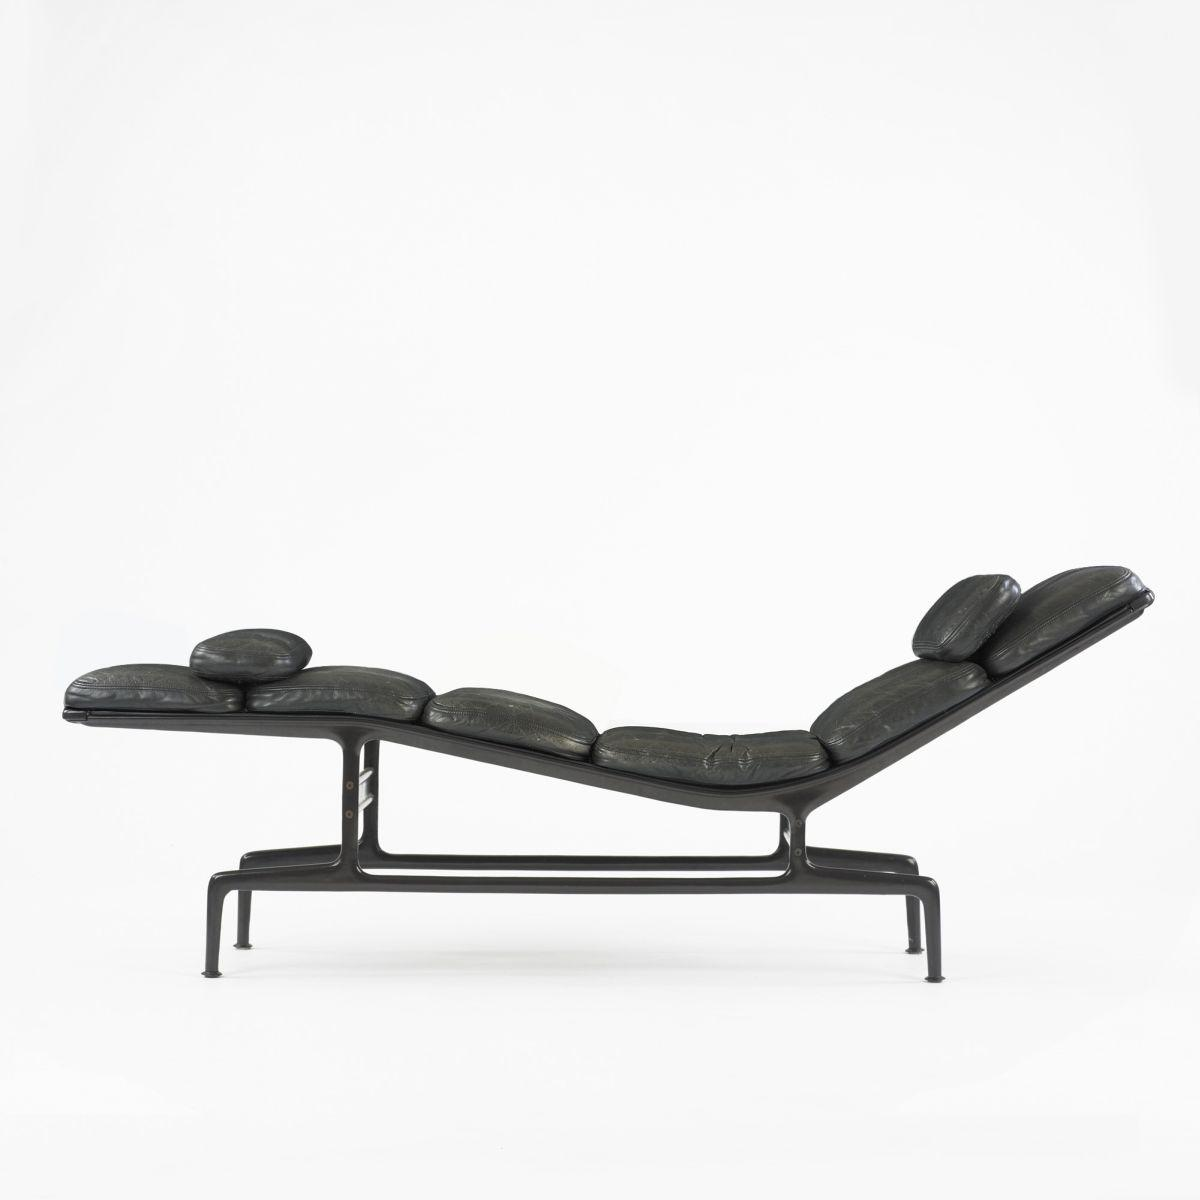 Charles and ray eames billy wilder chaise for Chaises ray et charles eames